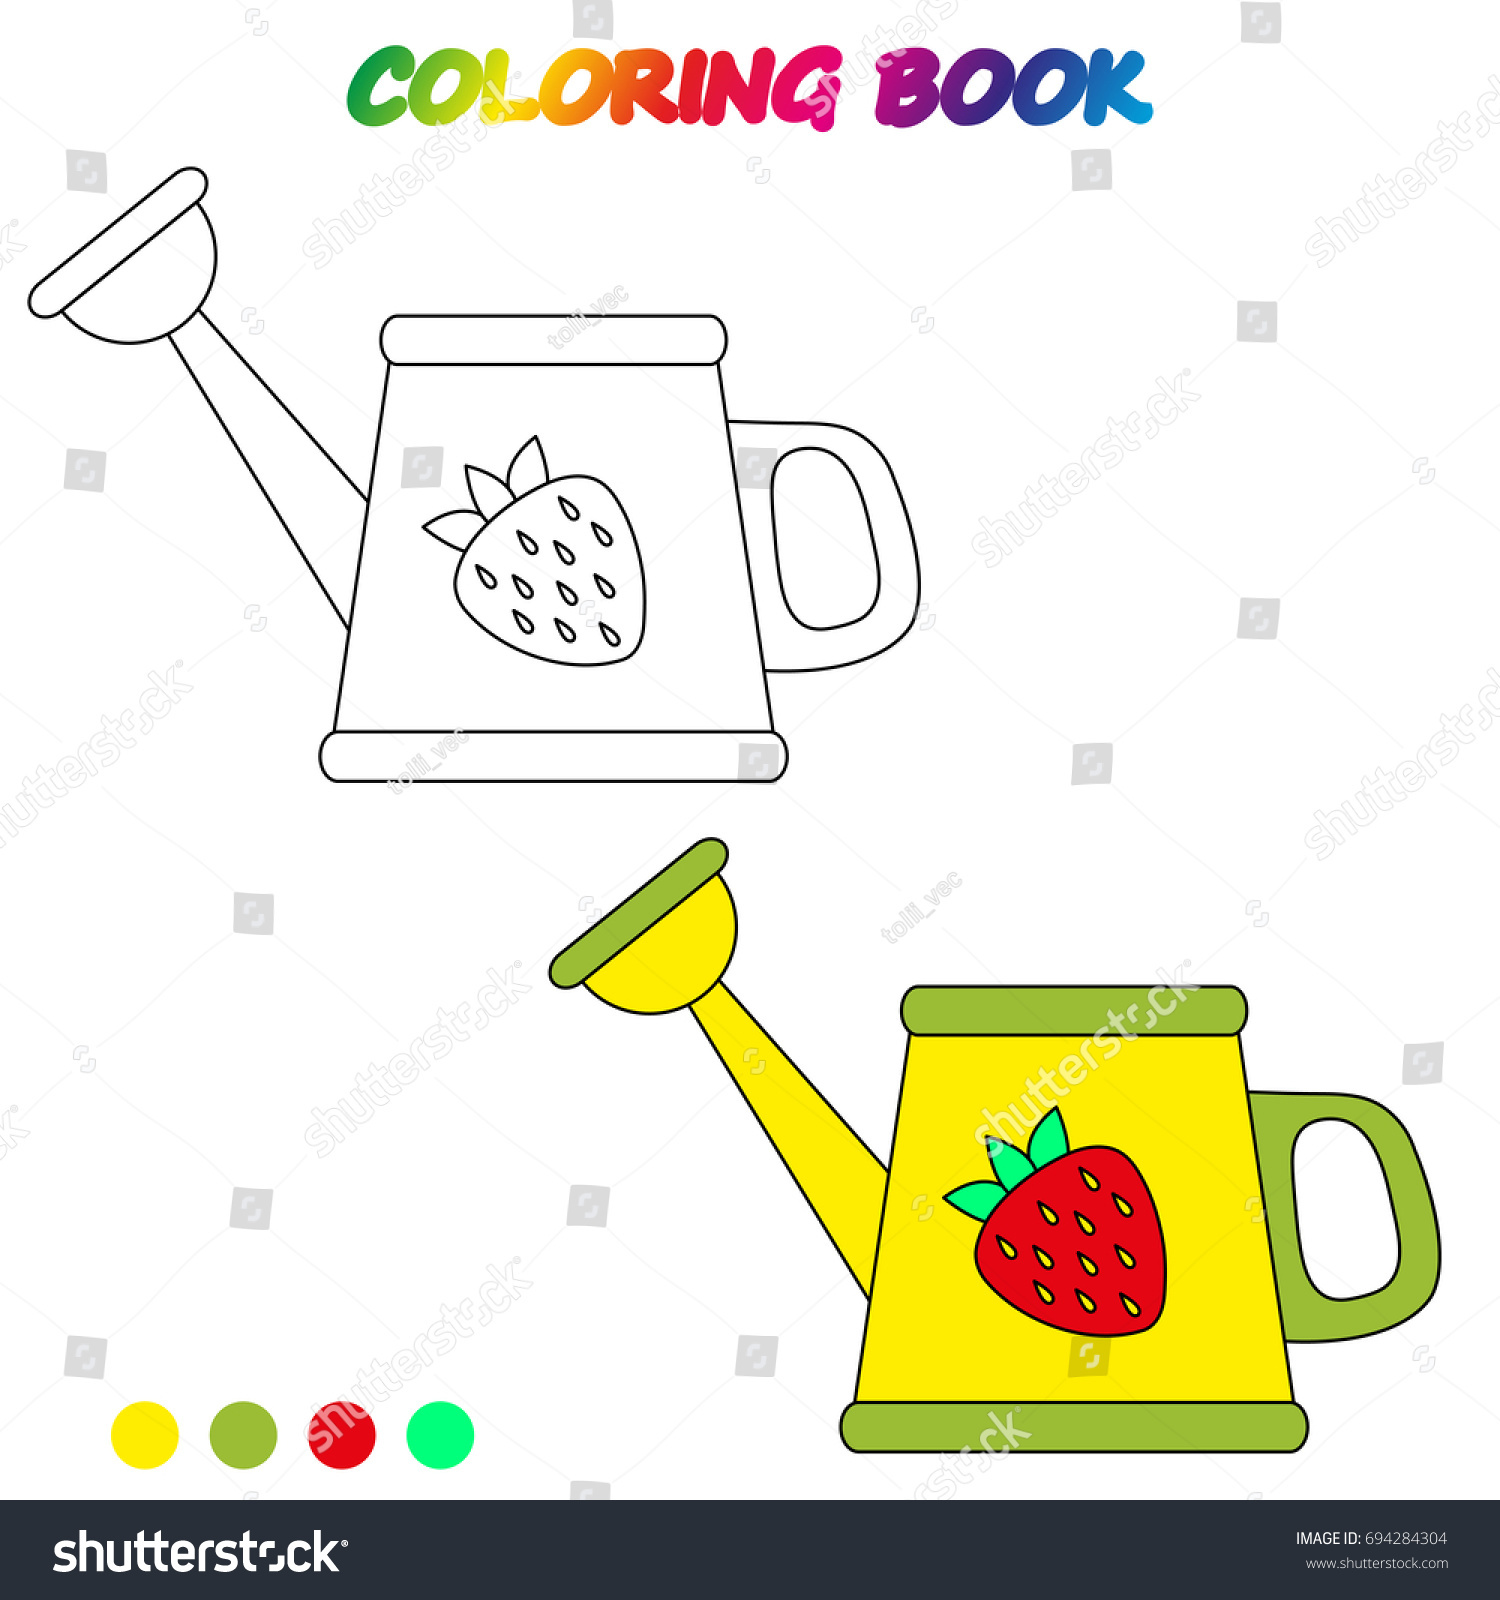 Watering Can Coloring Book Coloring Page Stock Vector (Royalty Free ...